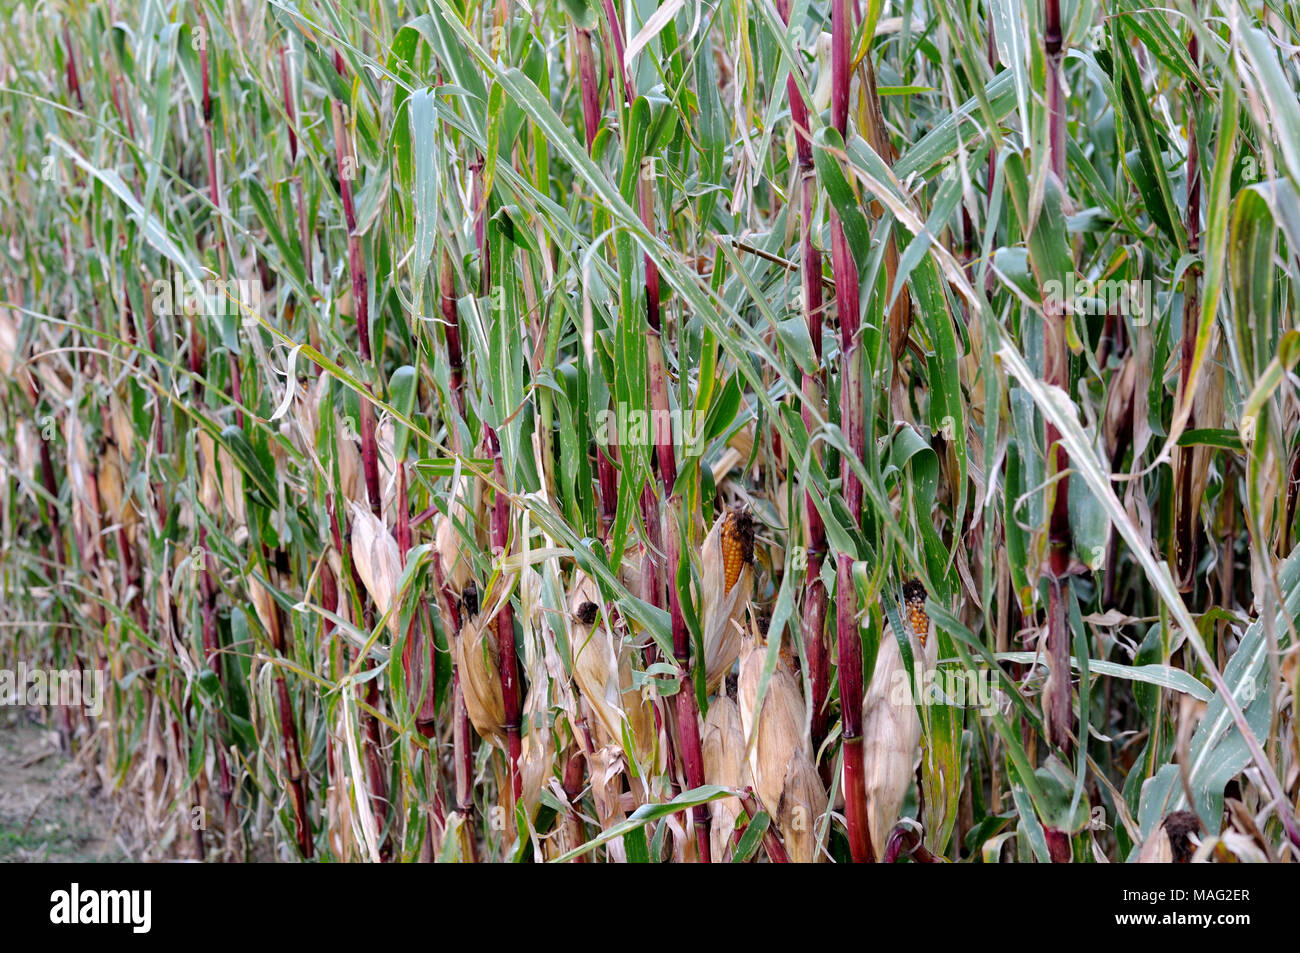 corn plants with red stems - Stock Image